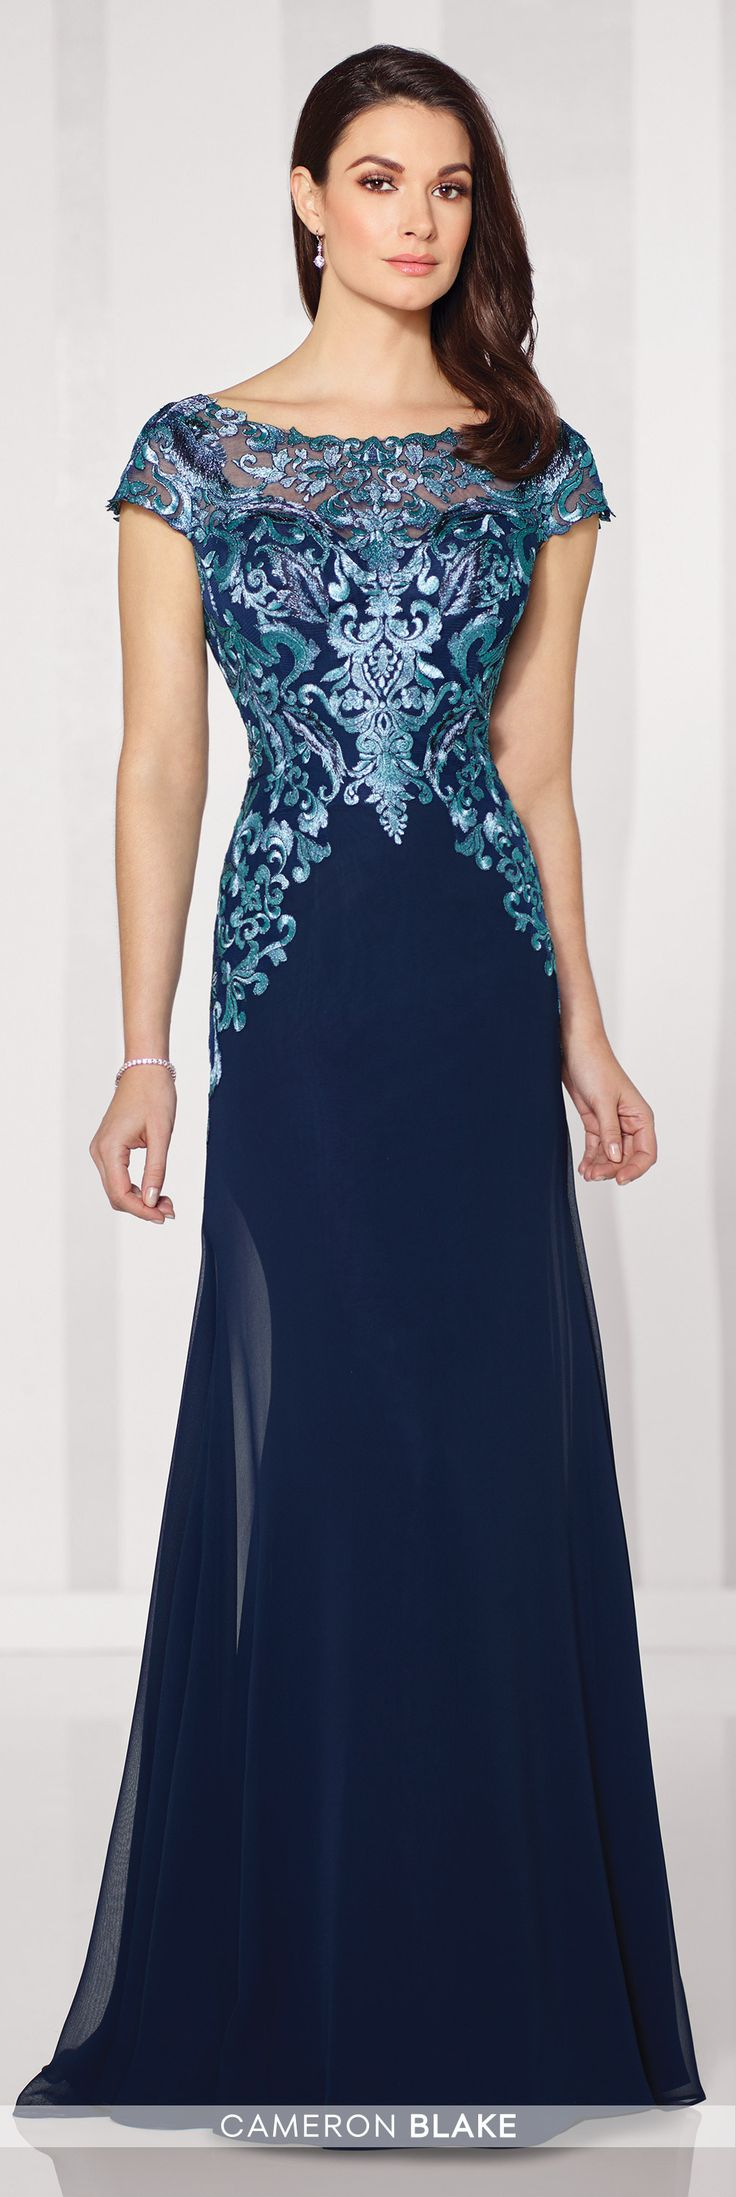 Formal Evening Gowns by Mon Cheri - Fall 2016 - Style No. 216691 - blue evening dress with lace illusion cap sleeves and neckline and V-back